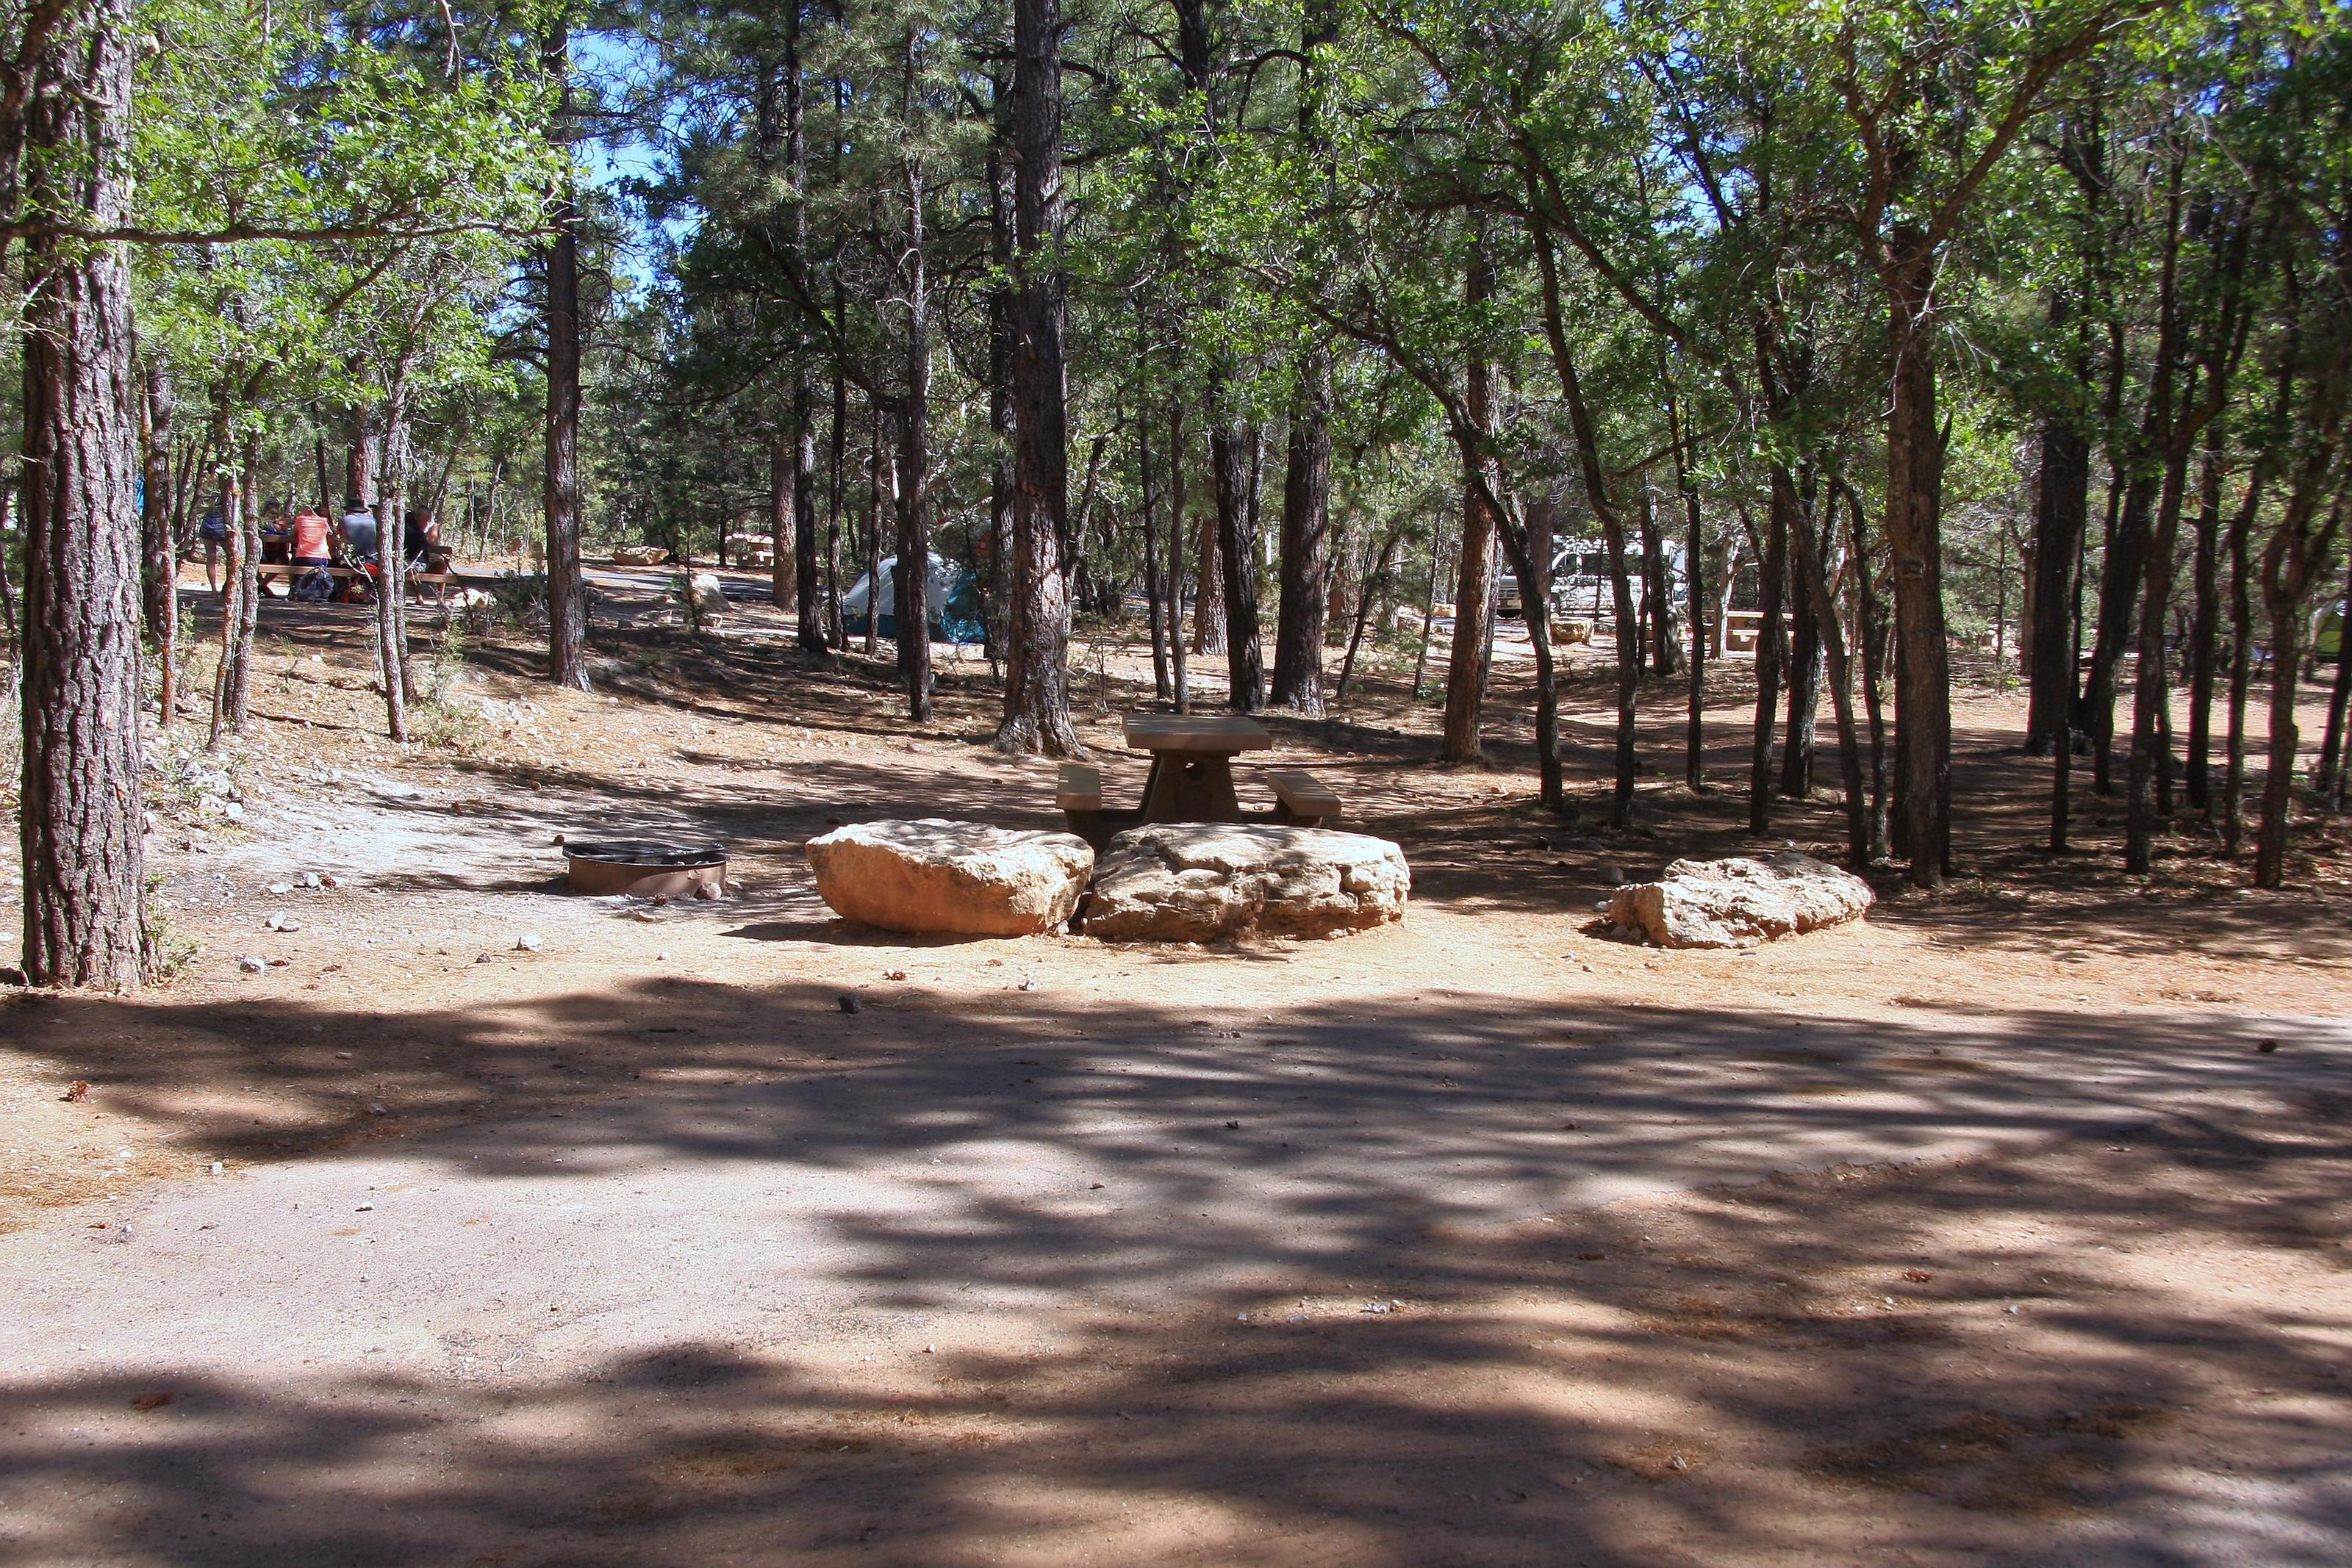 Picnic table, fire pit, and parking spot, Mather CampgroundPicnic table, fire pit, and parking spot for Fir Loop 62, Mather Campground